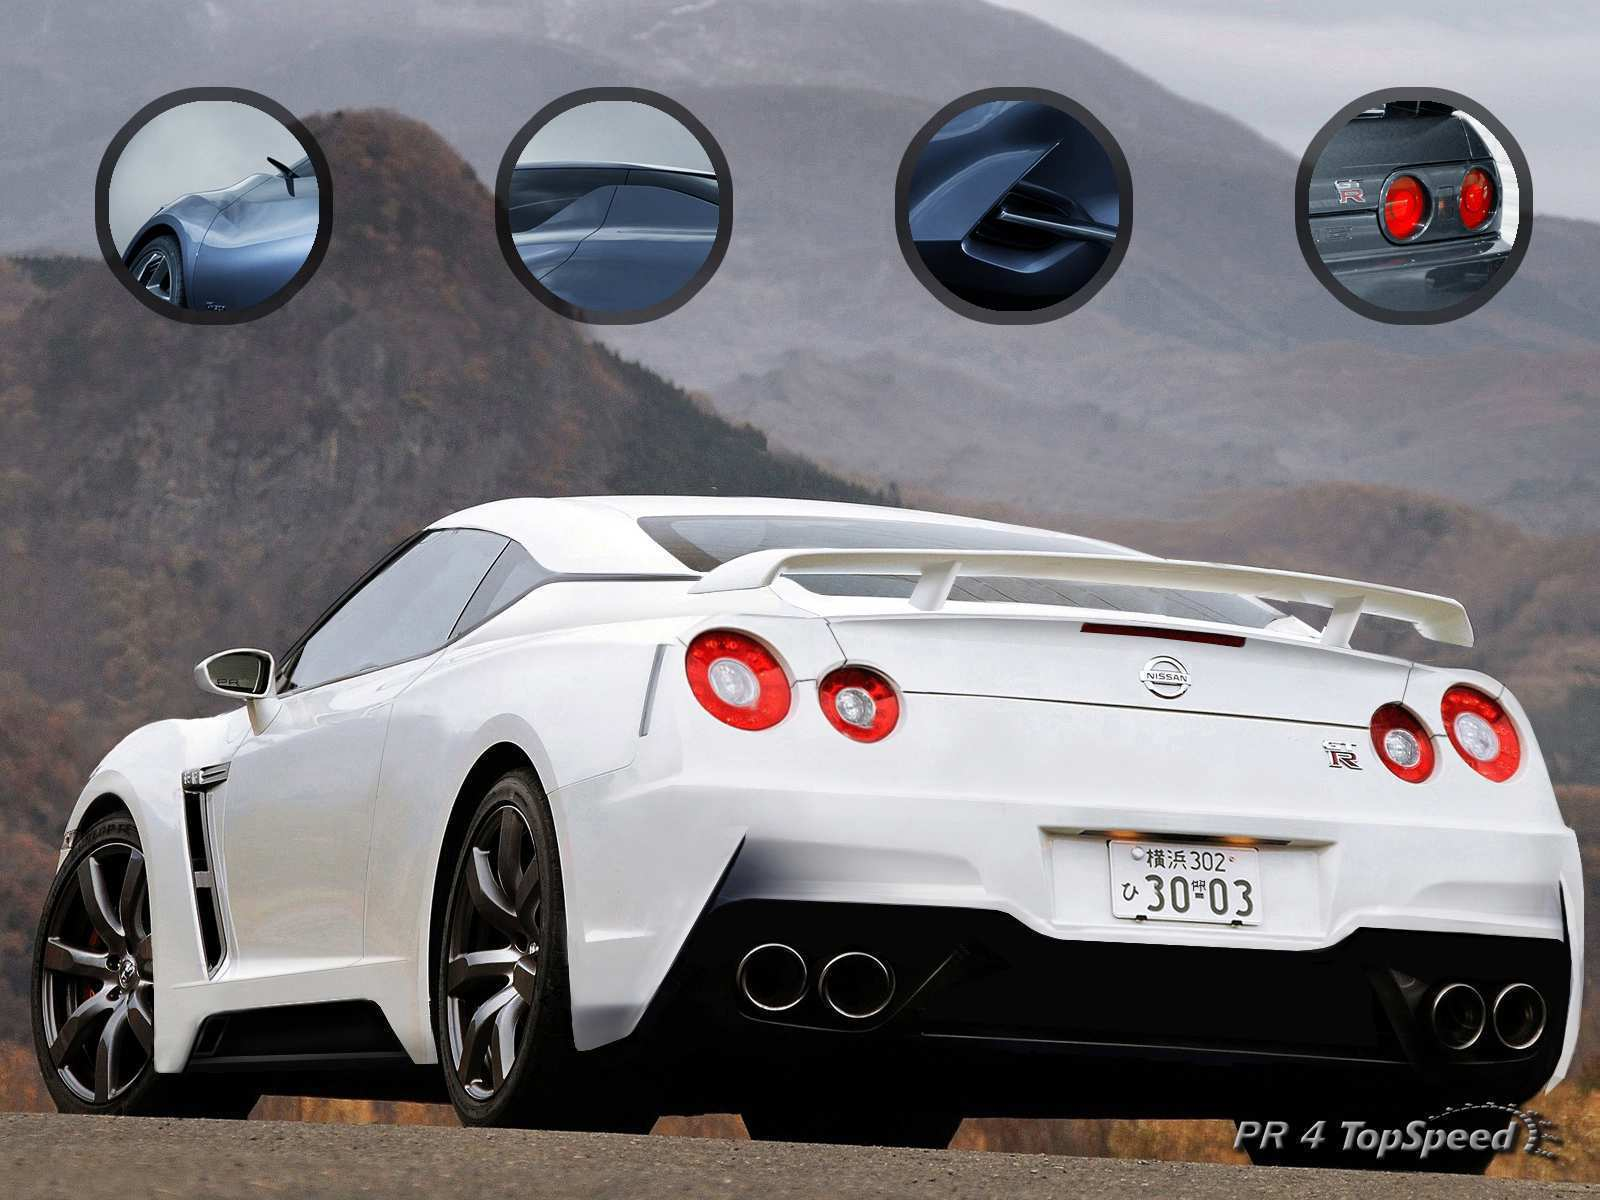 46 Concept of 2019 Nissan Gtr R36 Price by 2019 Nissan Gtr R36